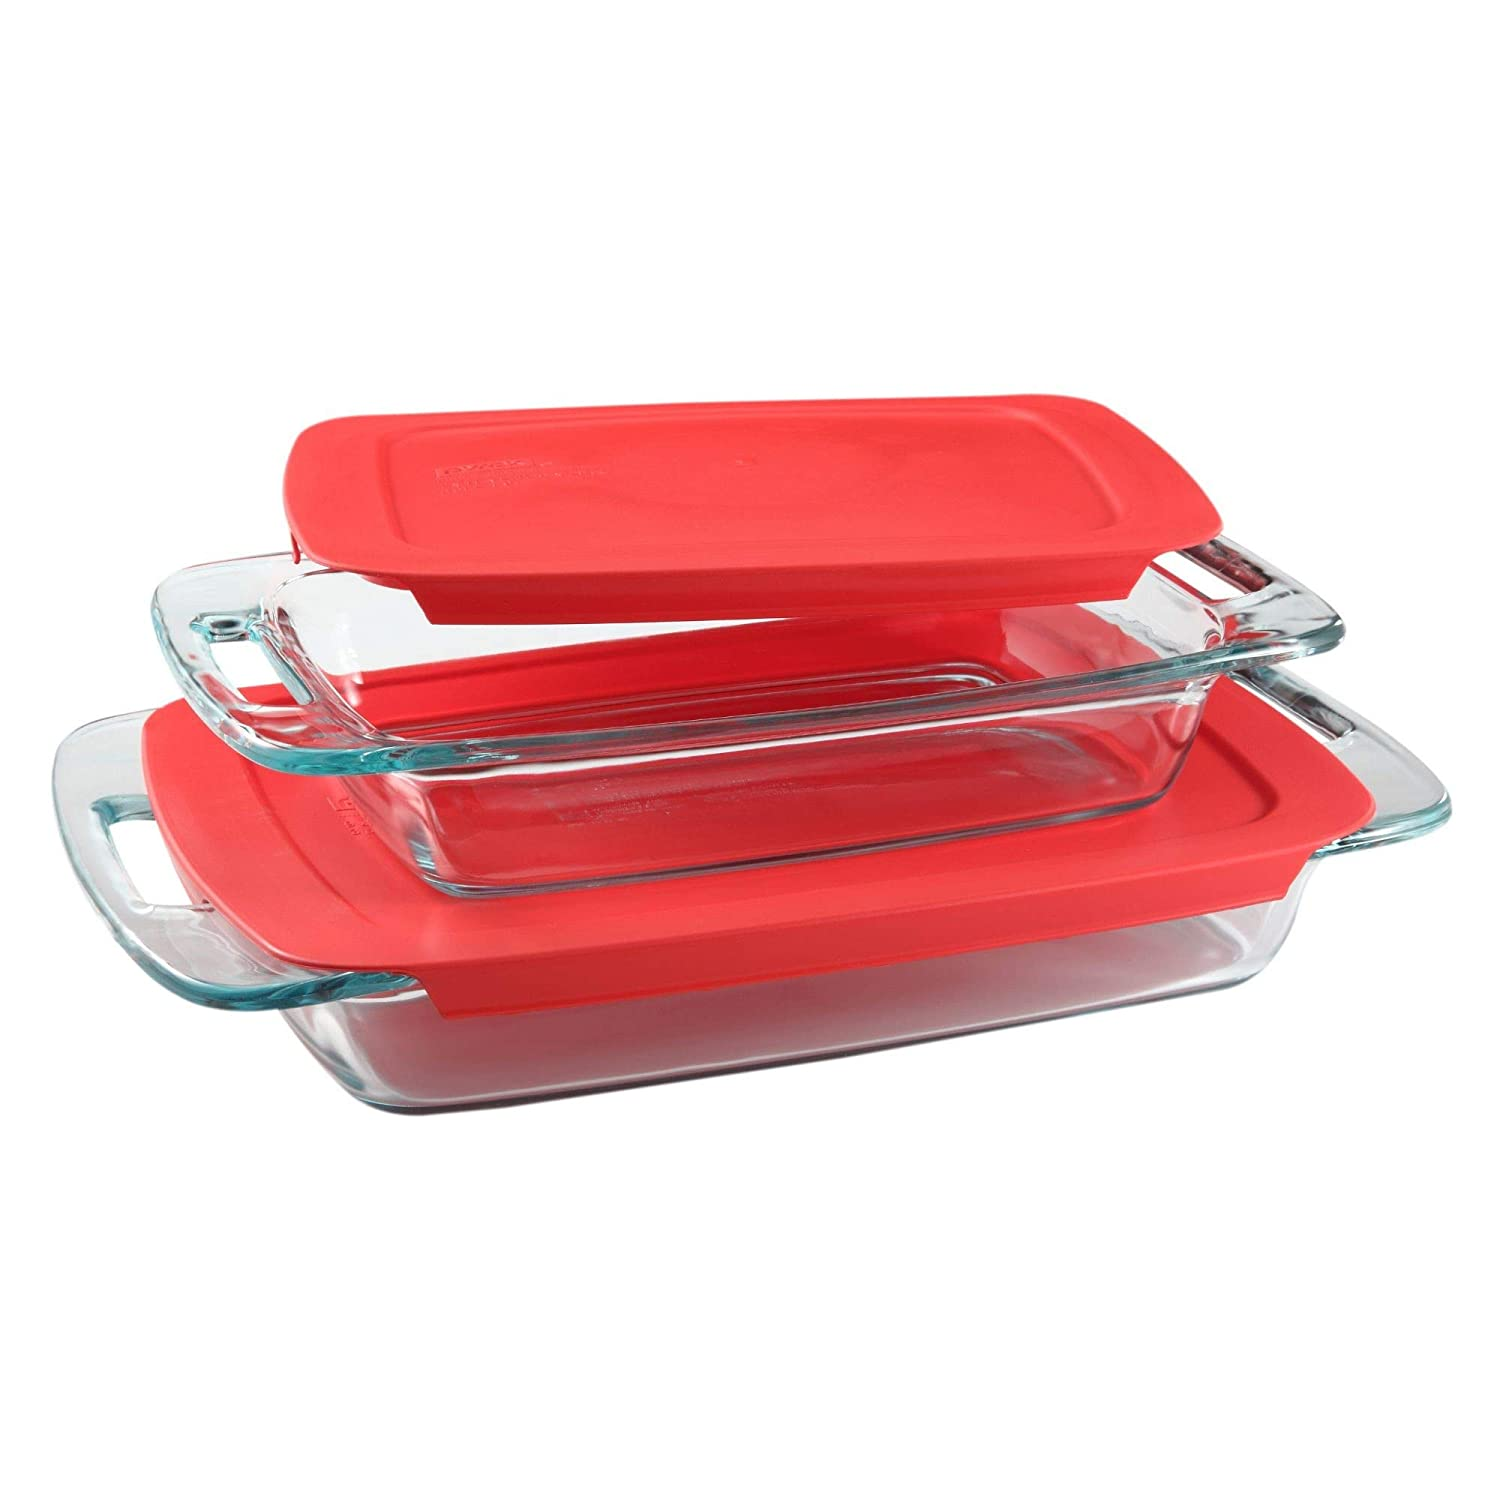 Pyrex Easy Grab 4-piece Oblong Baking Dish Set 687165468 68444